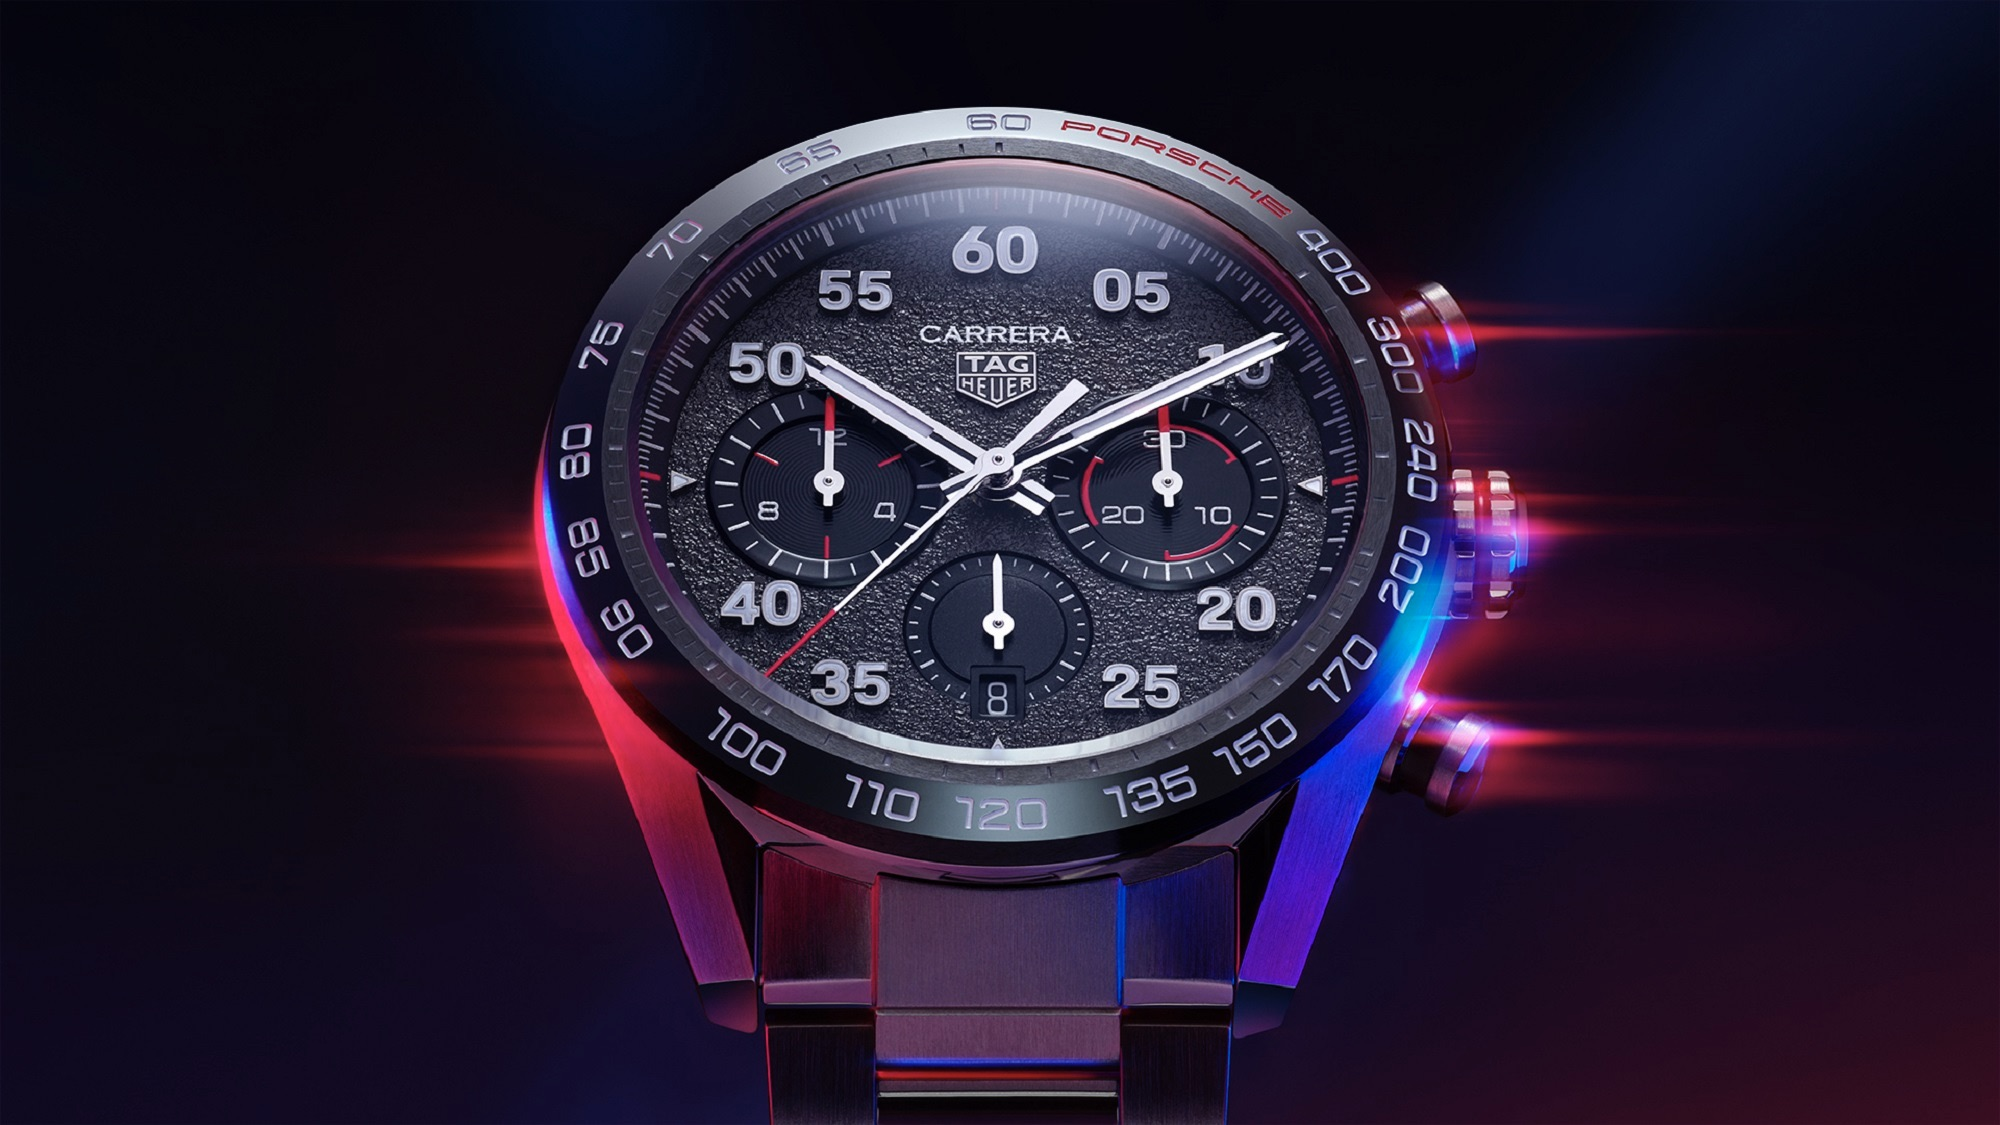 As a first step, the partners unveiled the TAG Heuer Carrera Porsche Chronograph